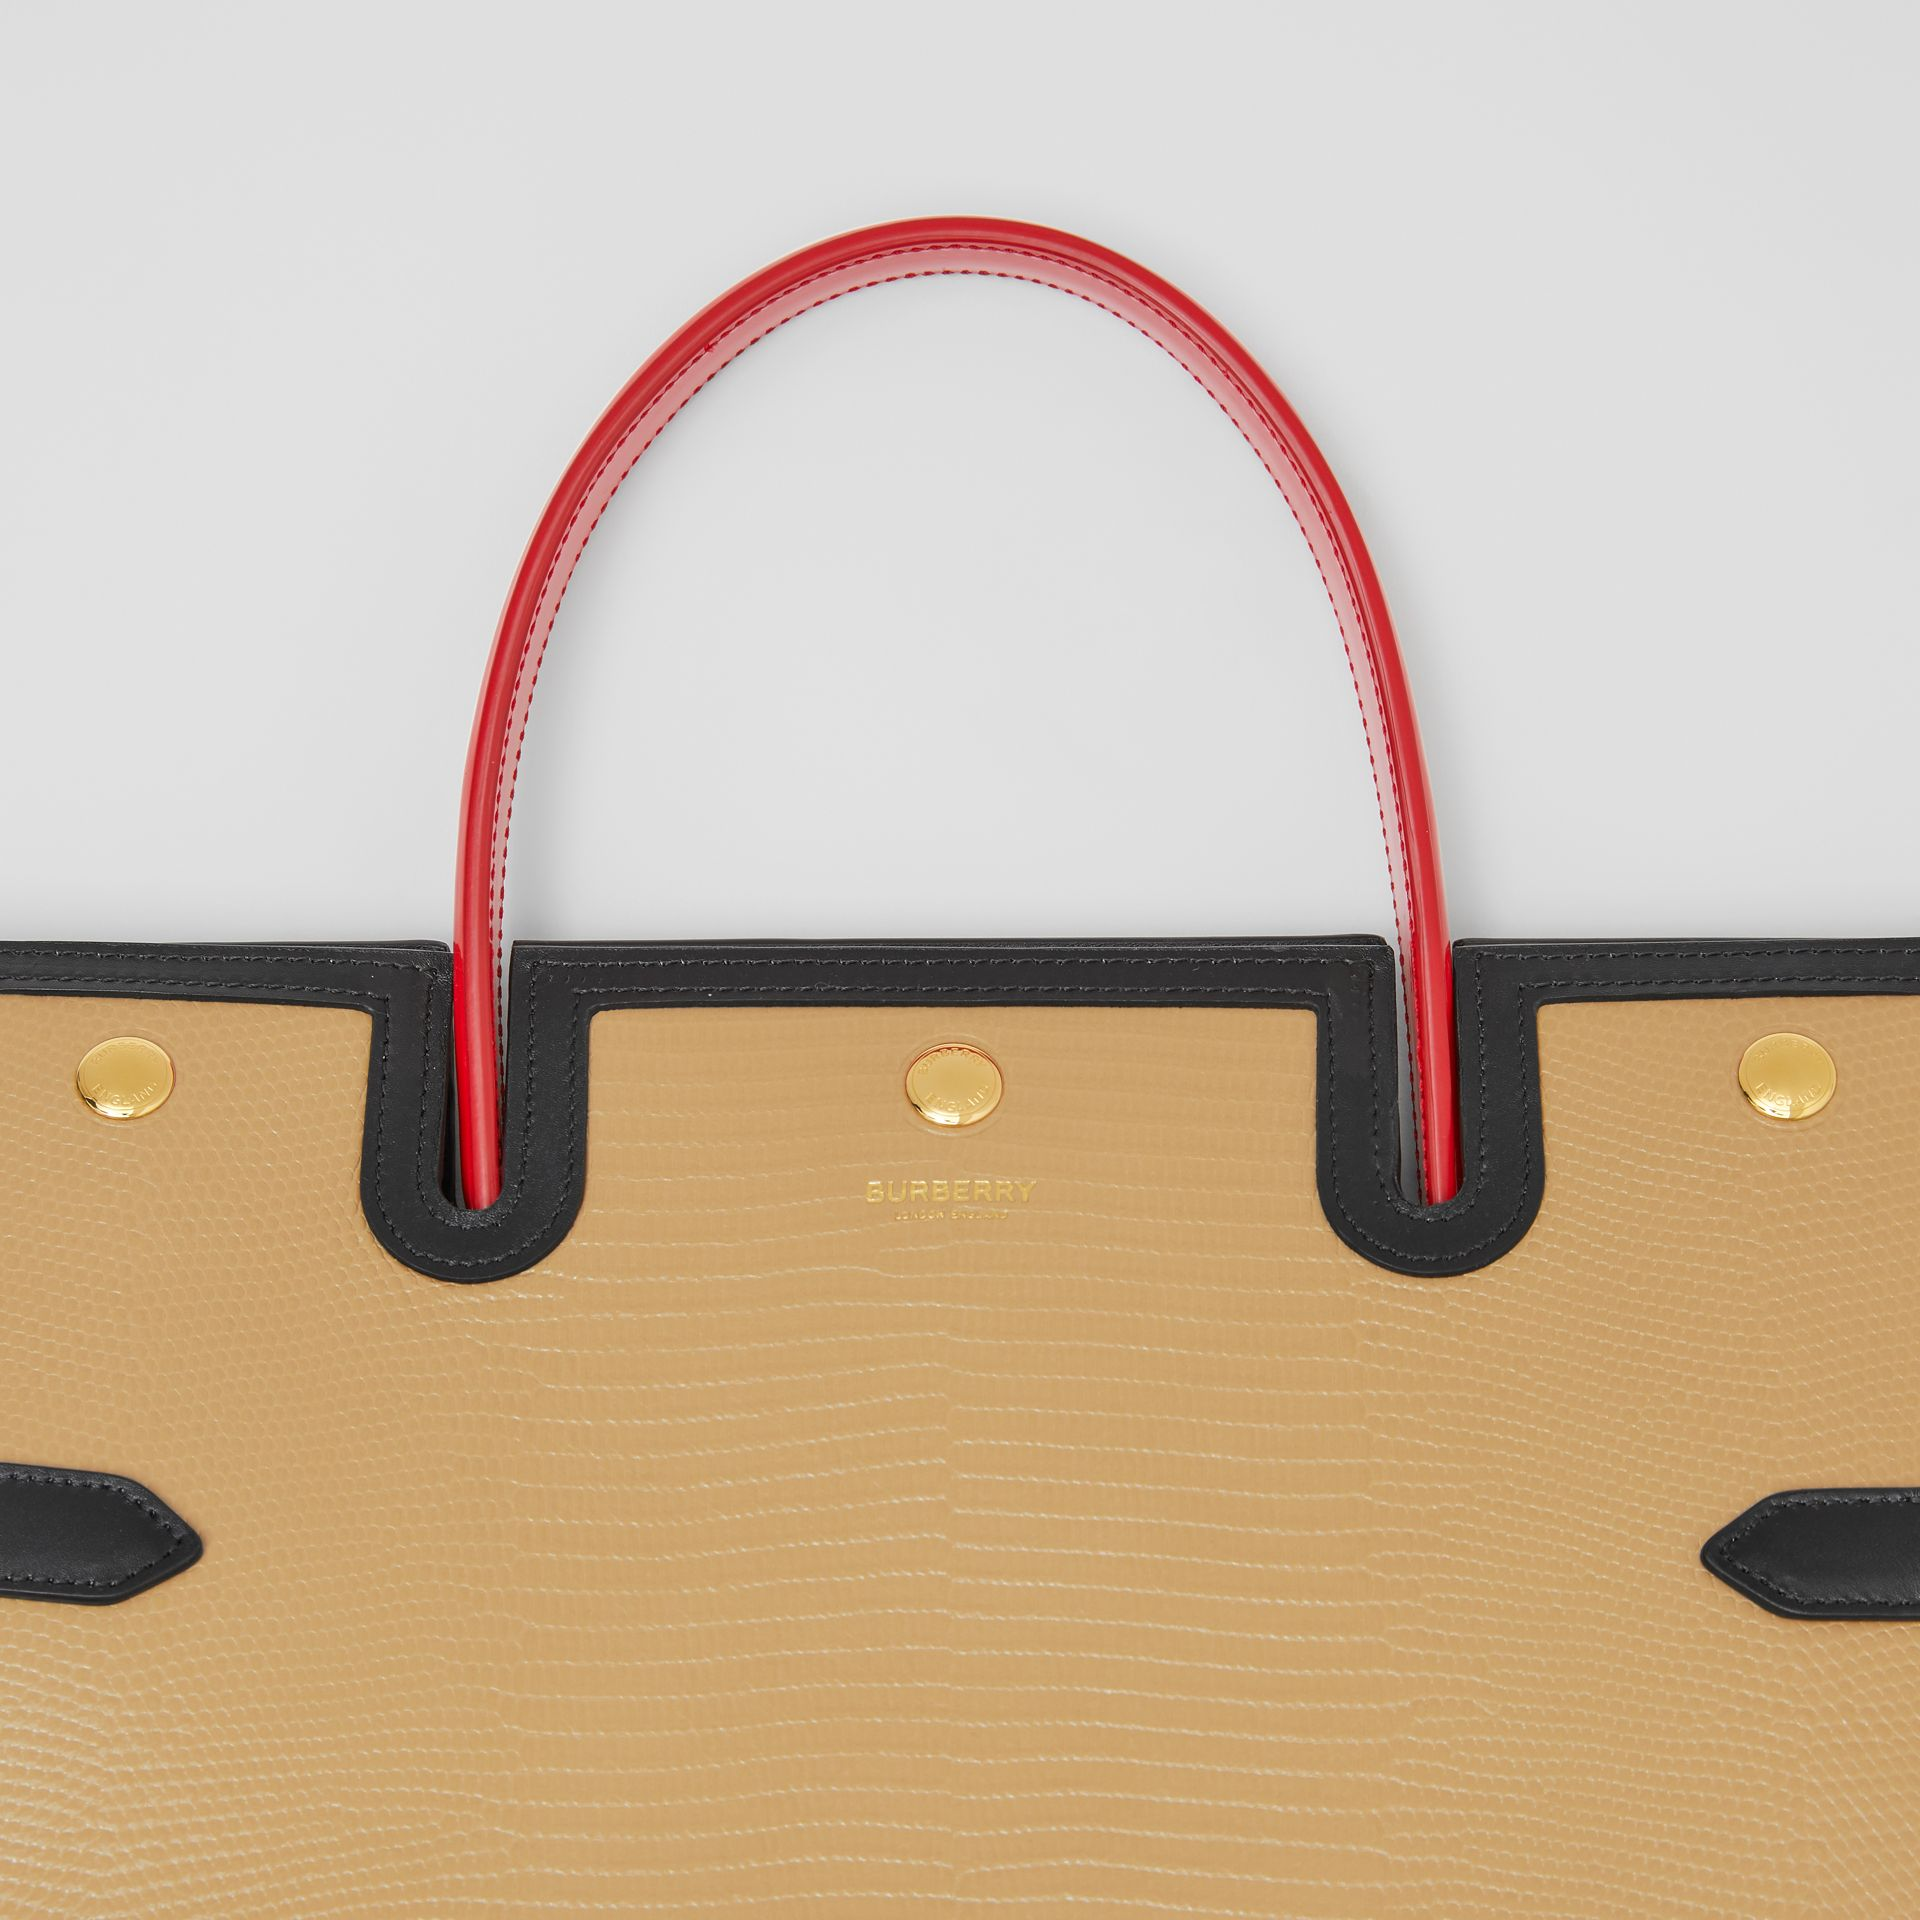 Medium Embossed Leather Title Bag in Honey - Women | Burberry Singapore - gallery image 1